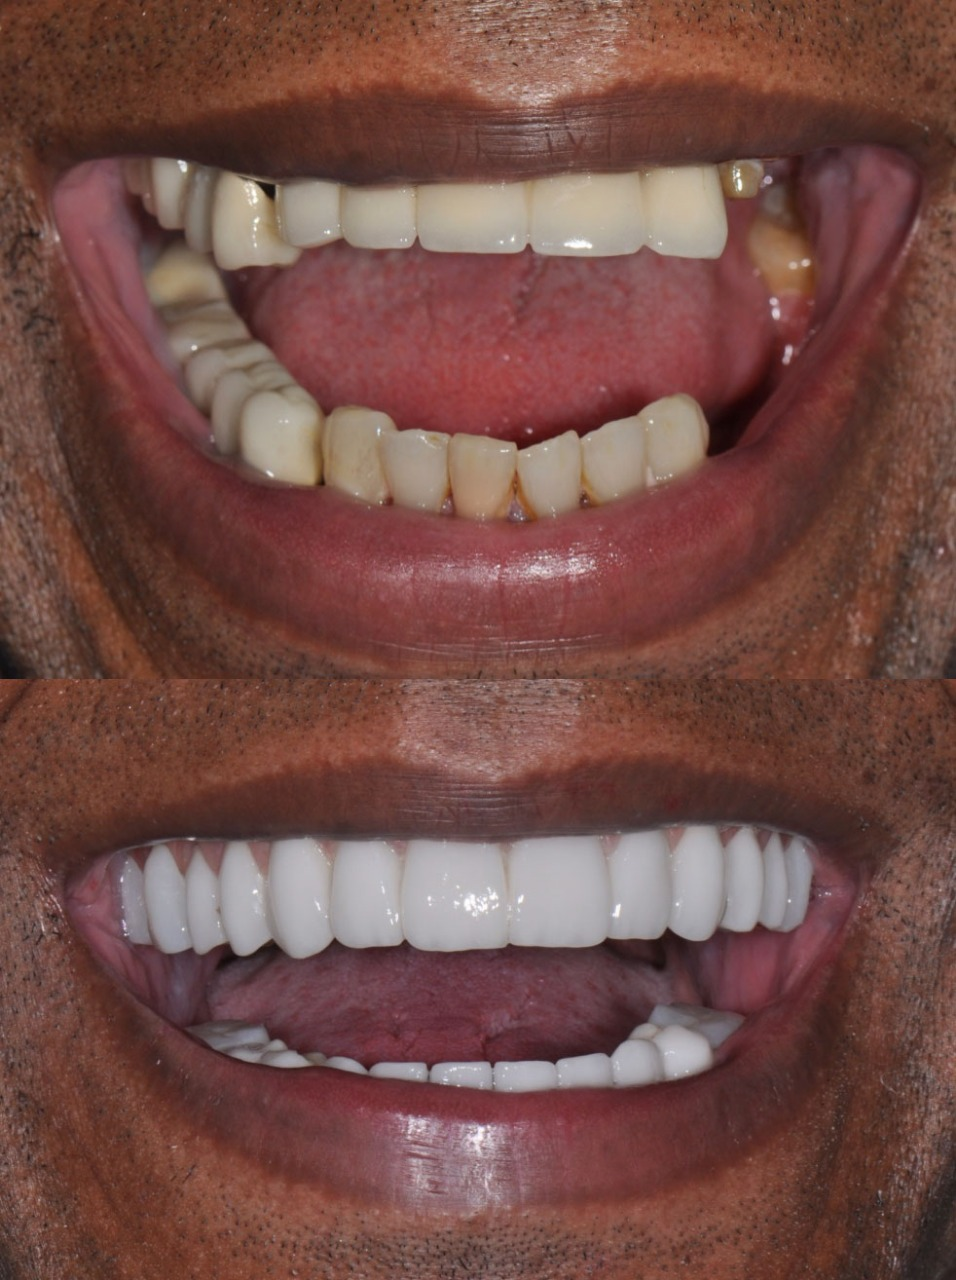 The Cost of Dental Work in Medellin, Colombia